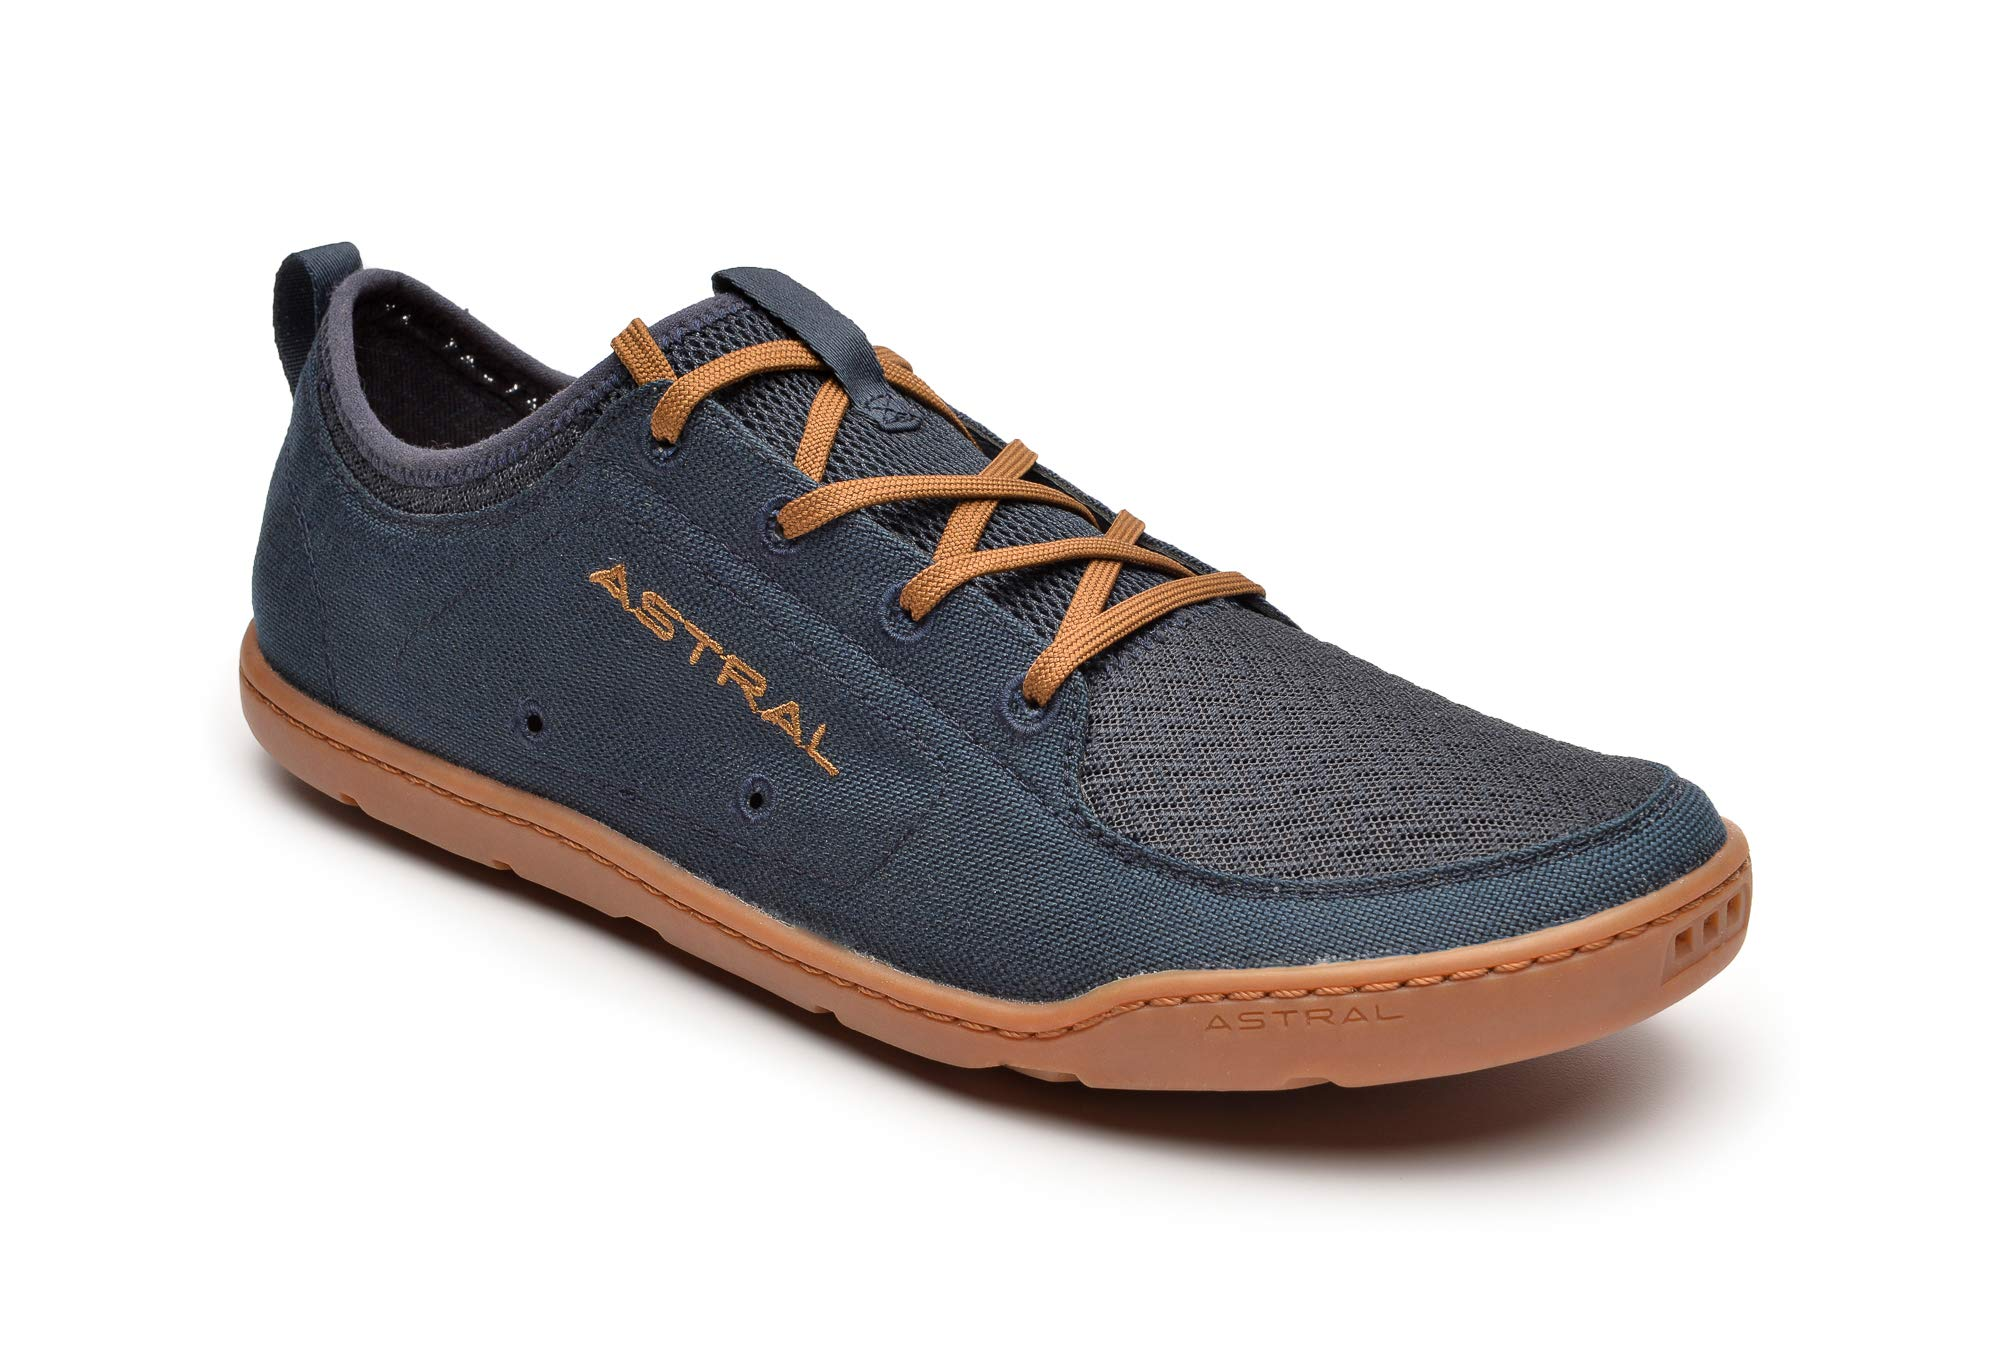 Astral Men's Loyak Everyday Outdoor Minimalist Sneakers, Lightweight and Flexible, Made for Water, Casual, Travel, and Boat, Navy/Brown, 9 M US by Astral